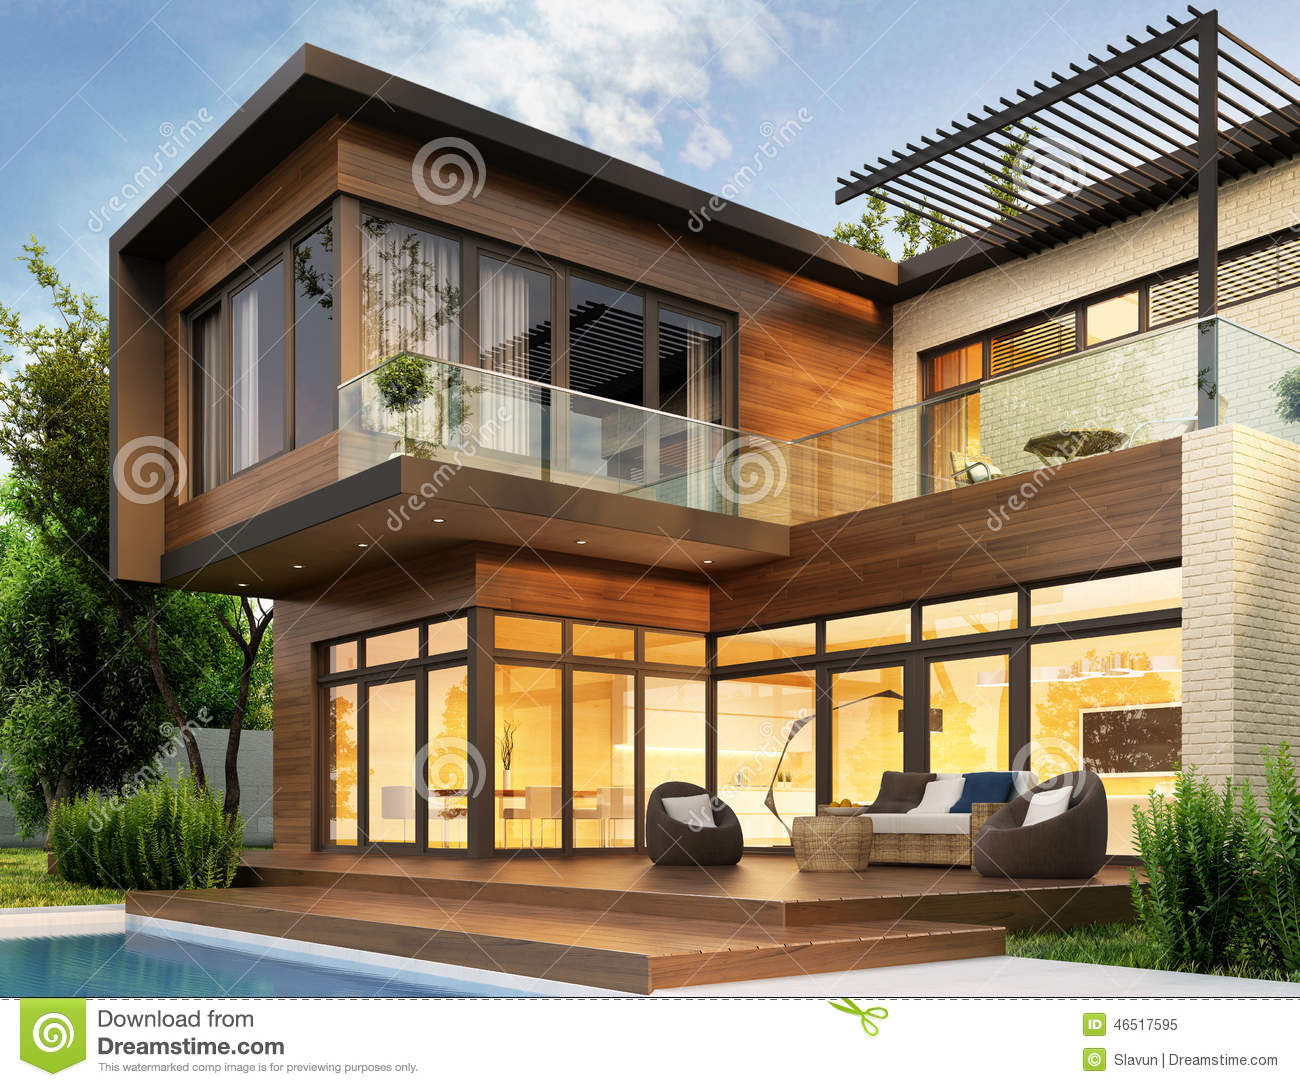 Superb Modern House Stock Photo Image 46517595 For Modern Houses Interior And  Exterior